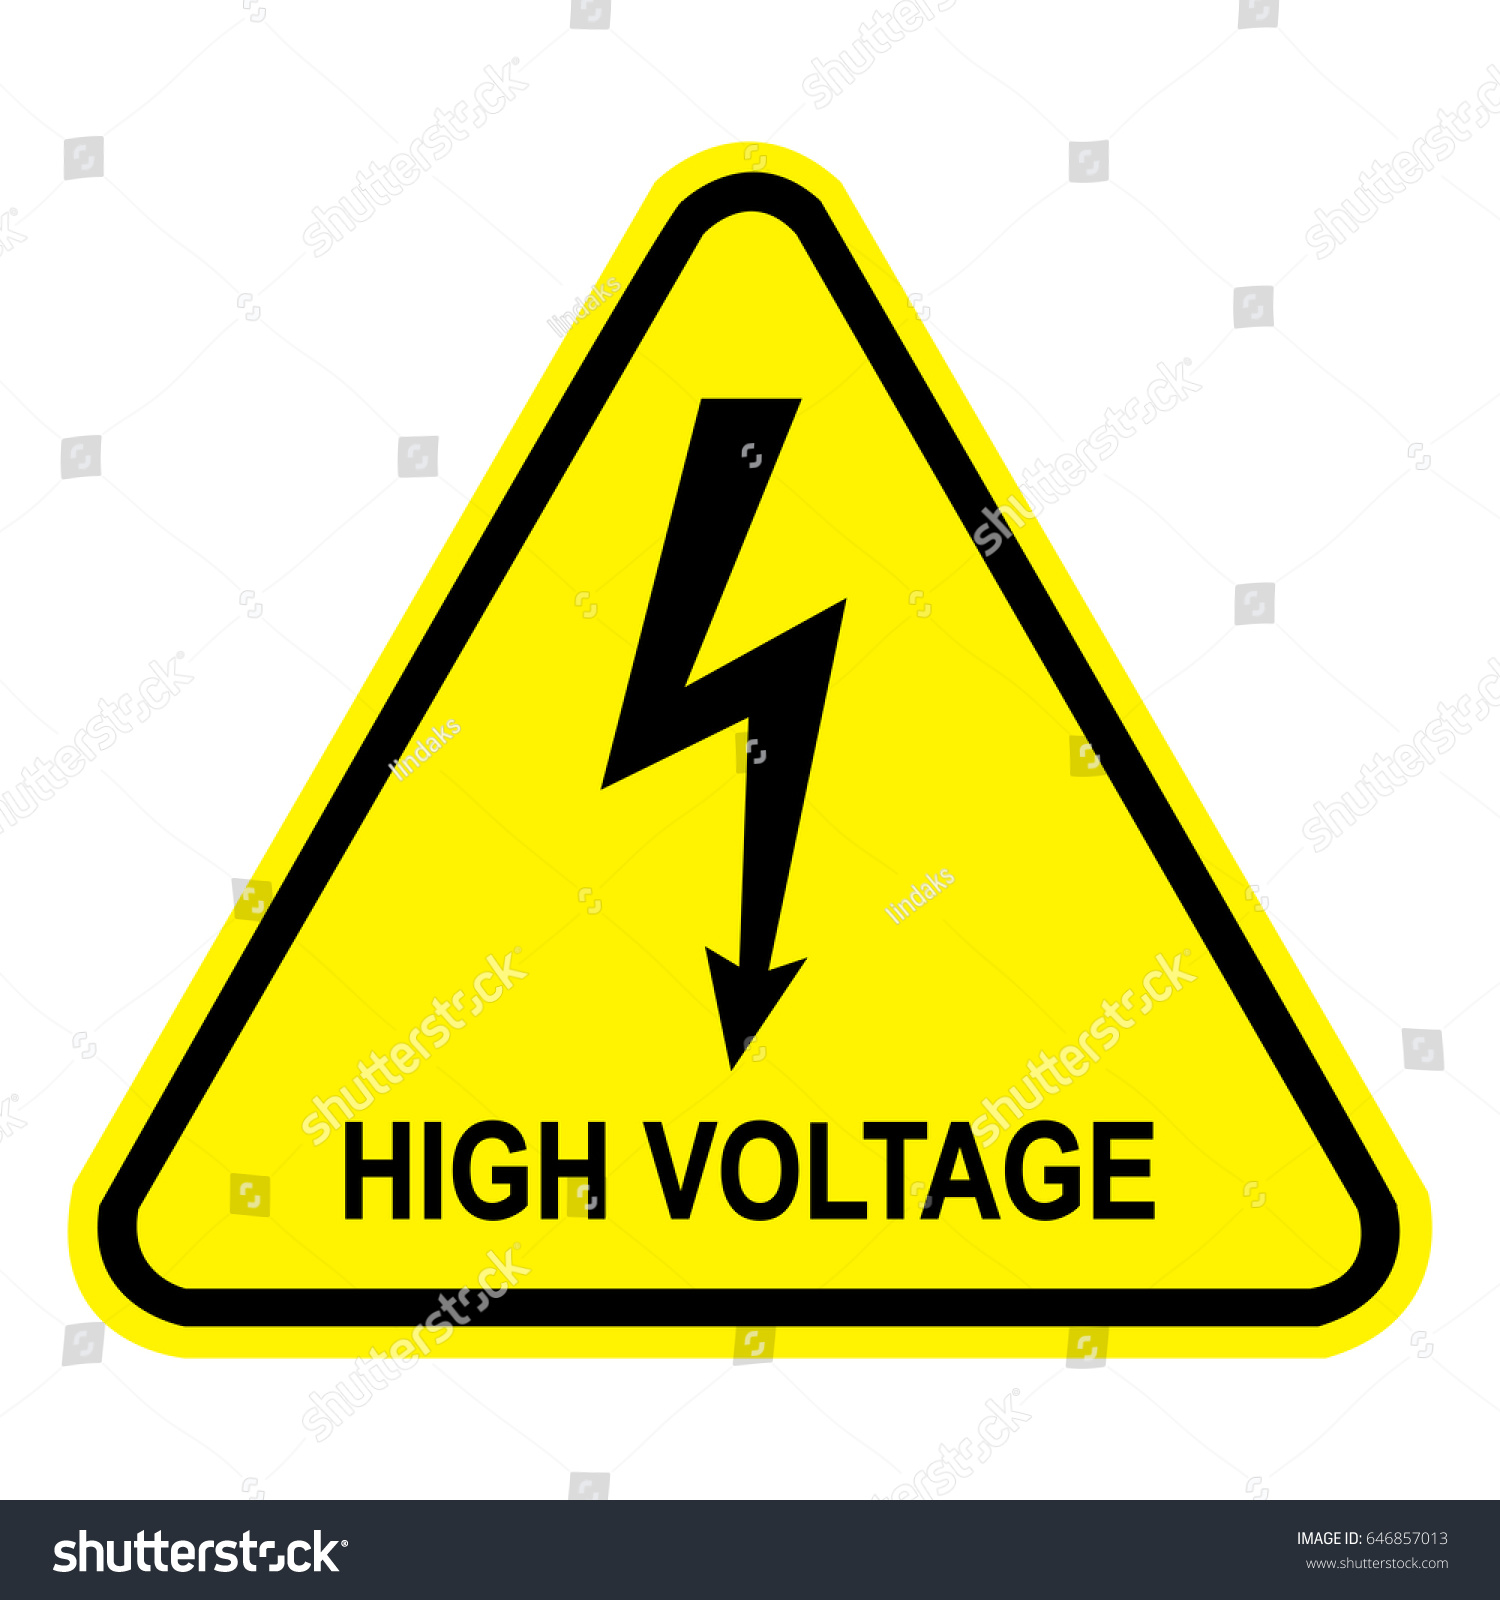 High Voltage Sign Safety Sign Danger Stock Photo (Photo, Vector ...